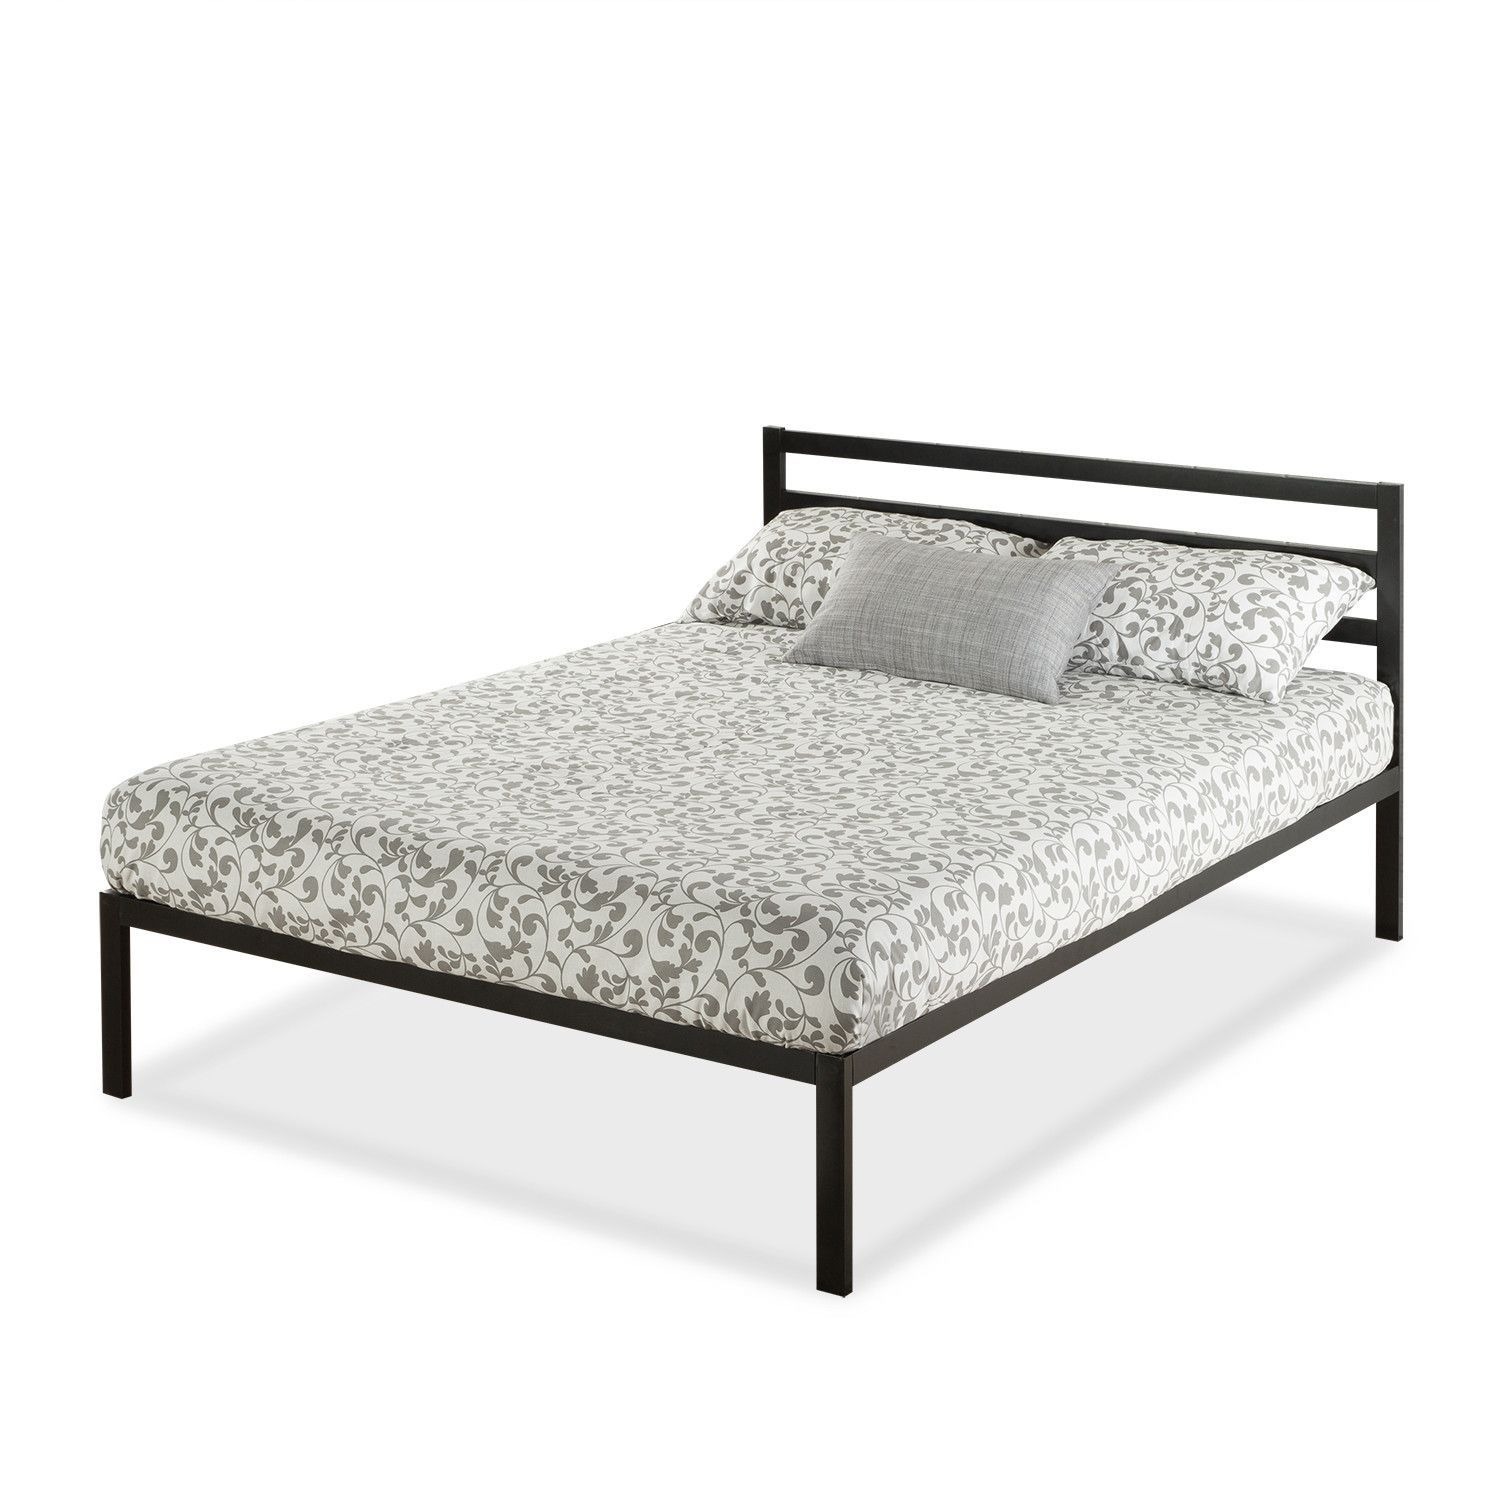 Features Plastic Feet Protect Your Floors Strong Mattress Support Prevents Sagging And Increases Life Modern Studio Collection